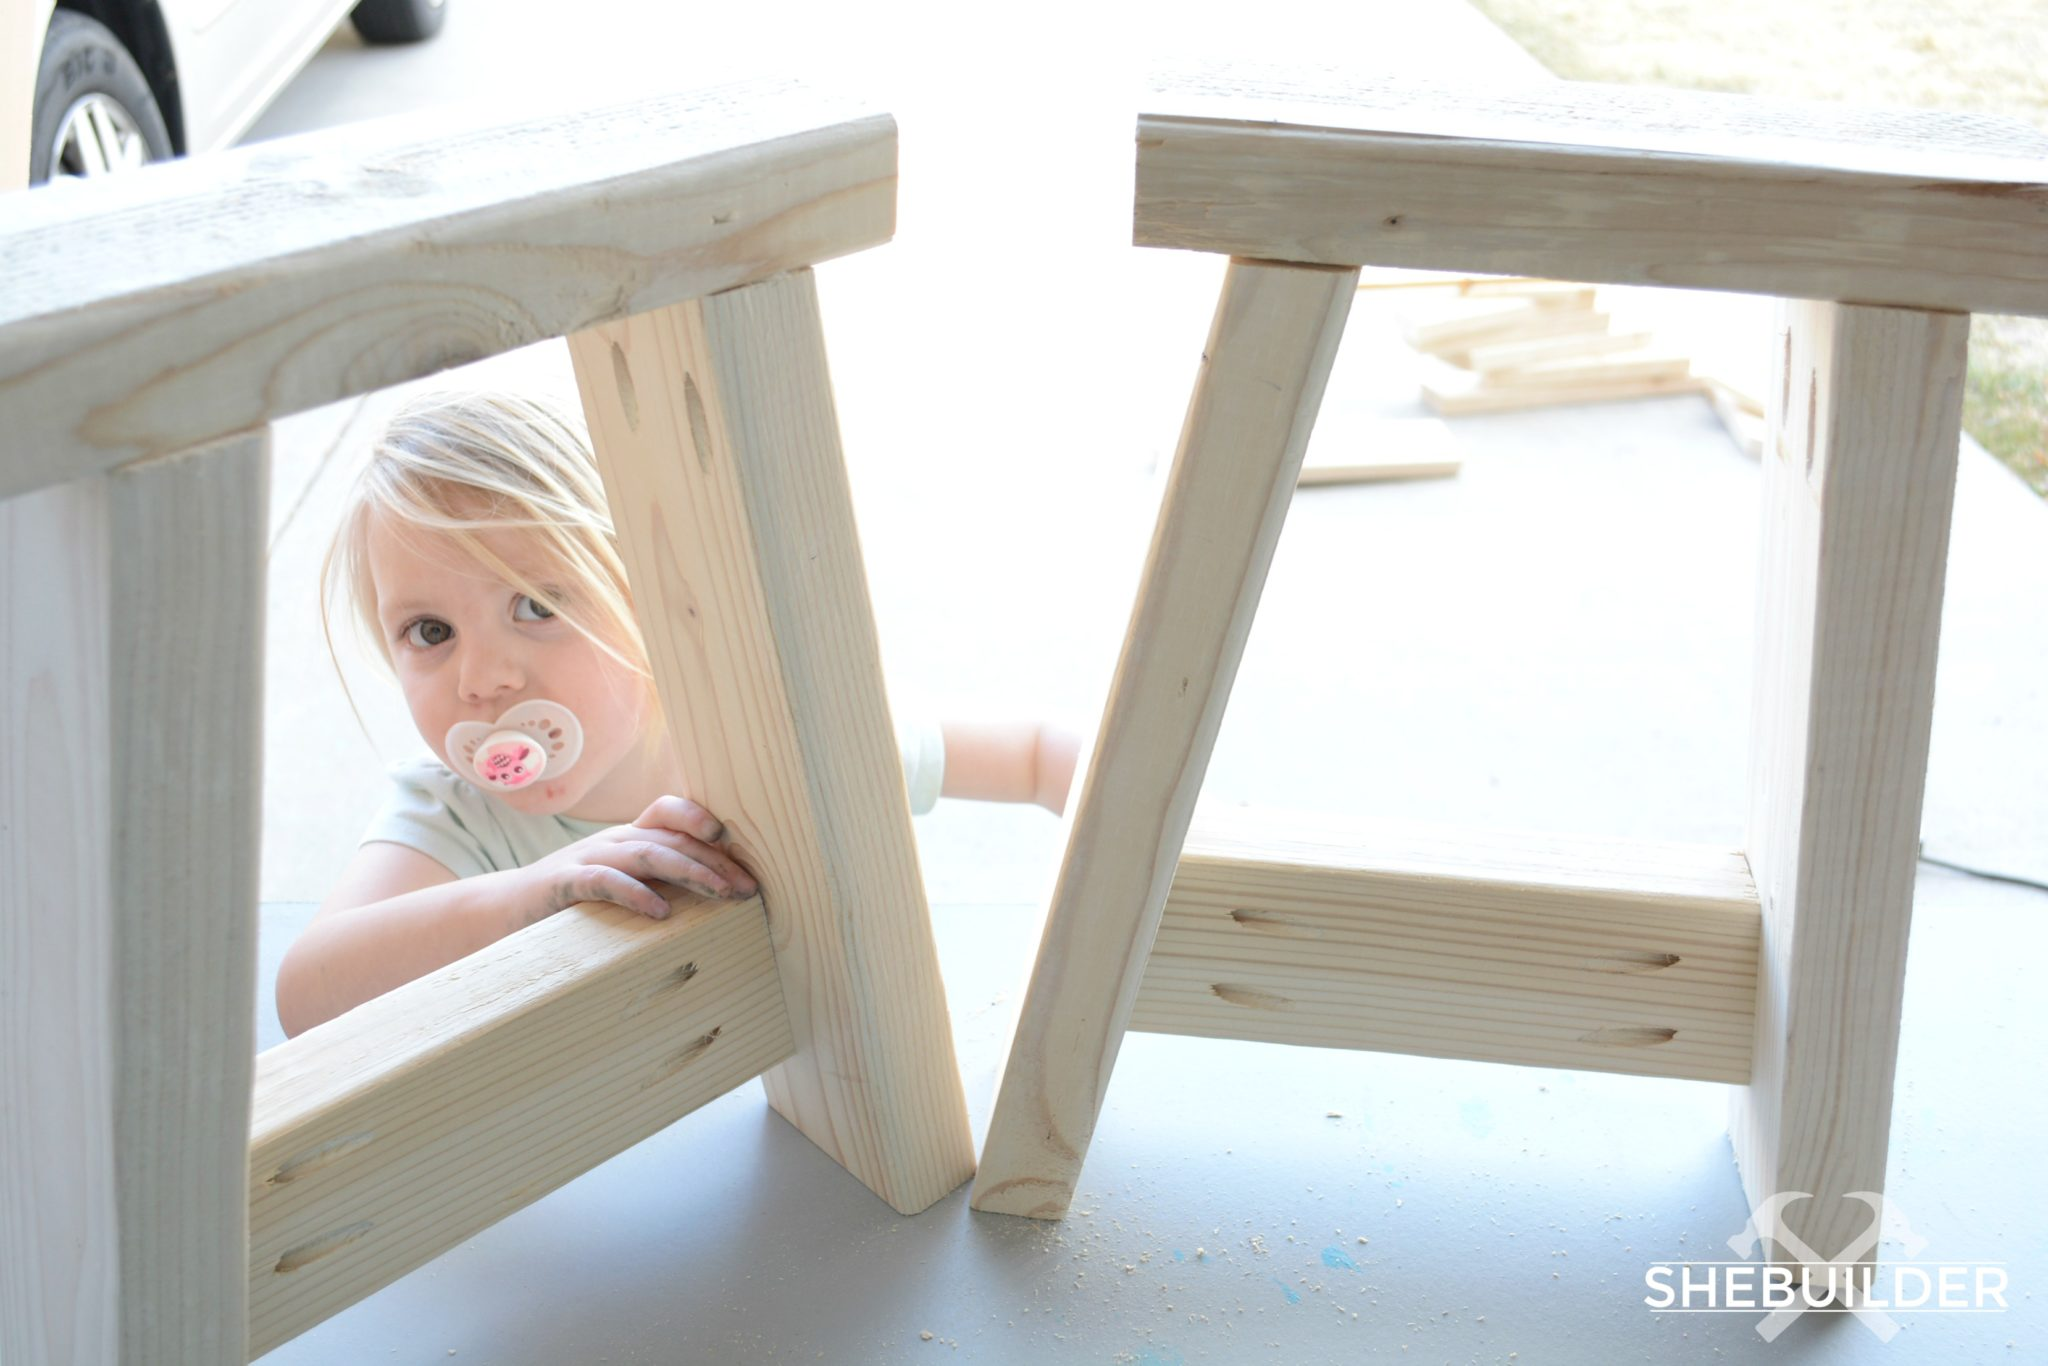 Pair of DIY Bench Legs with Toddler